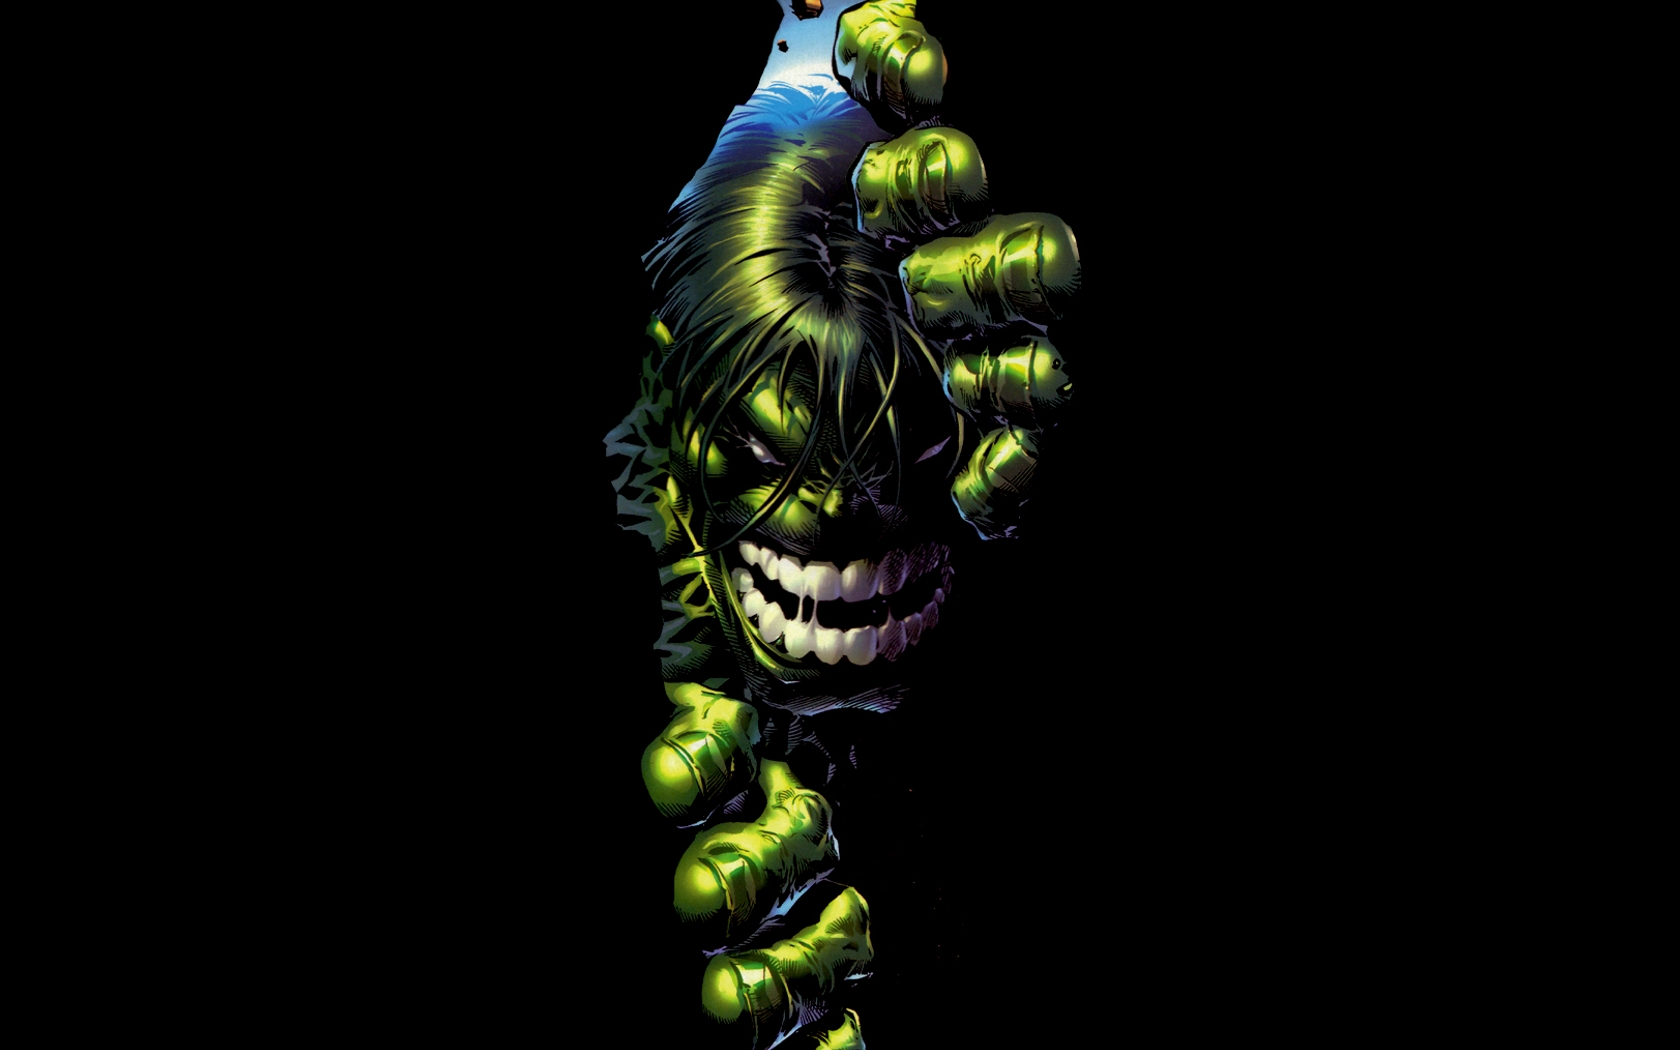 Hulk comics Marvel Comics wallpaper 1680x1050 58608 1680x1050